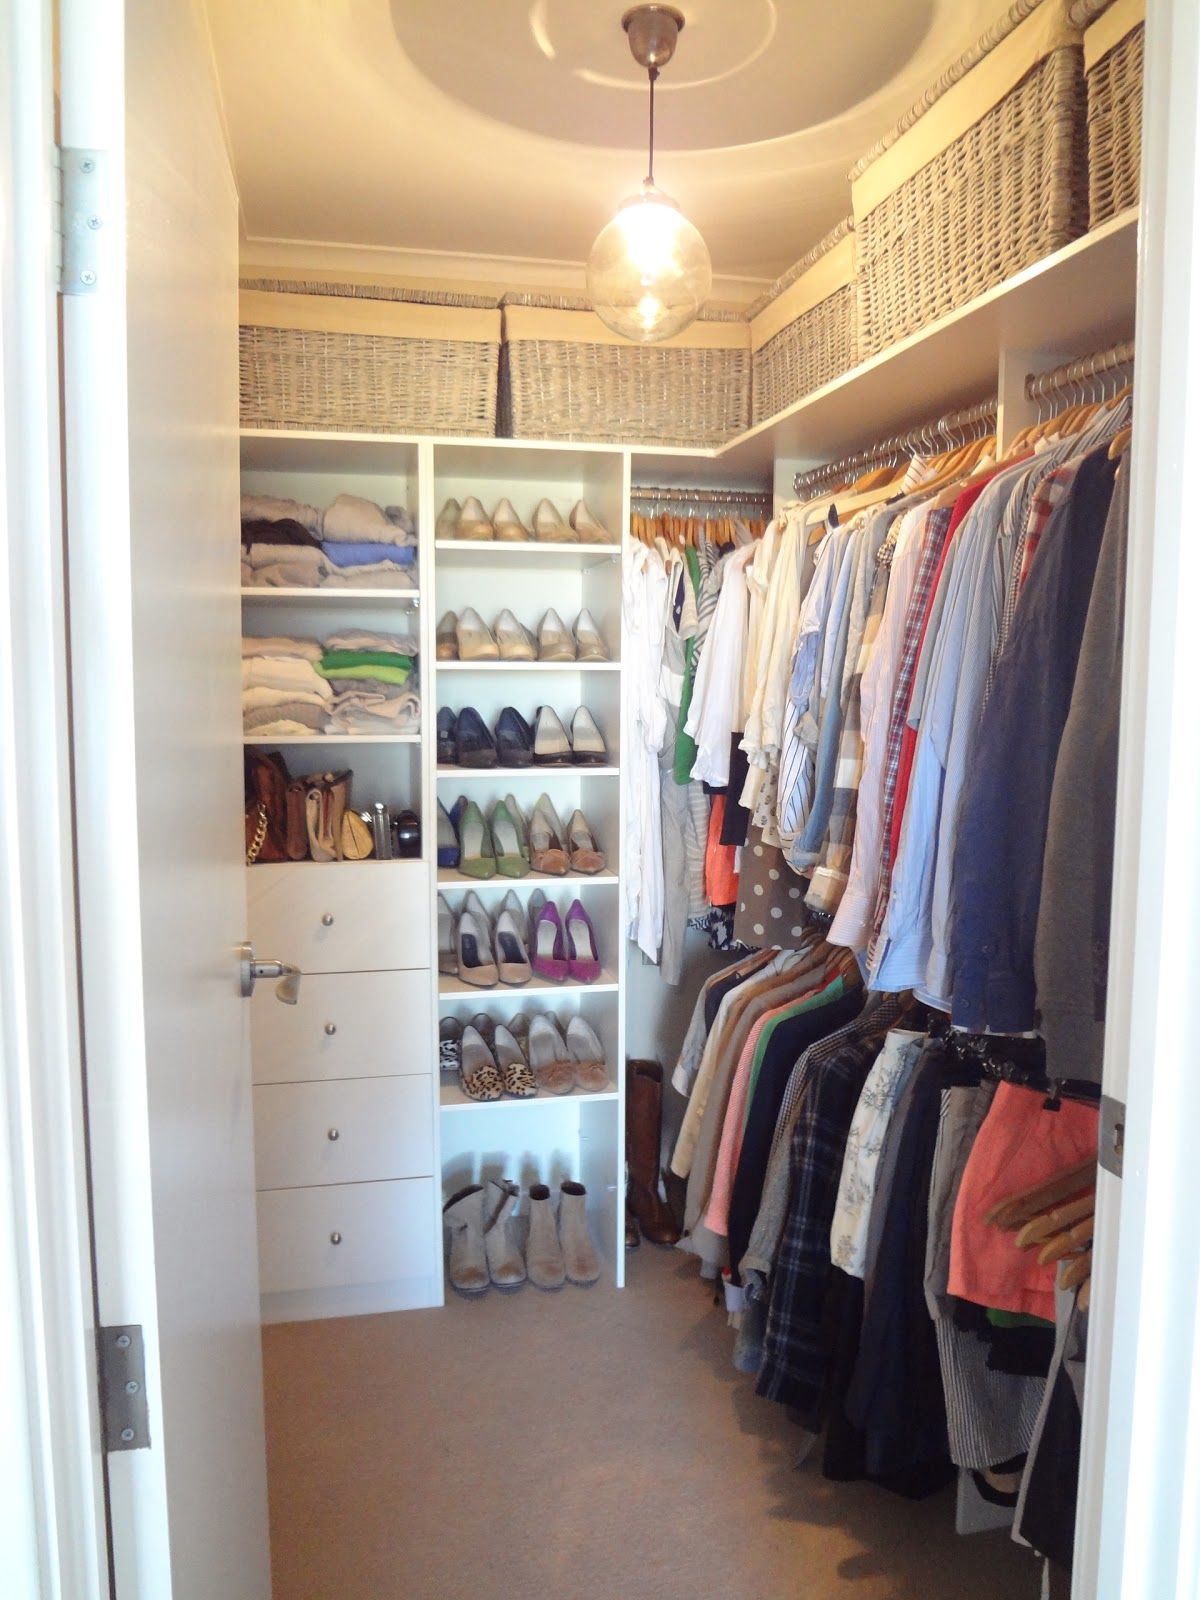 20 incredible small walk in closet ideas makeovers - Pictures of walk in closets ...